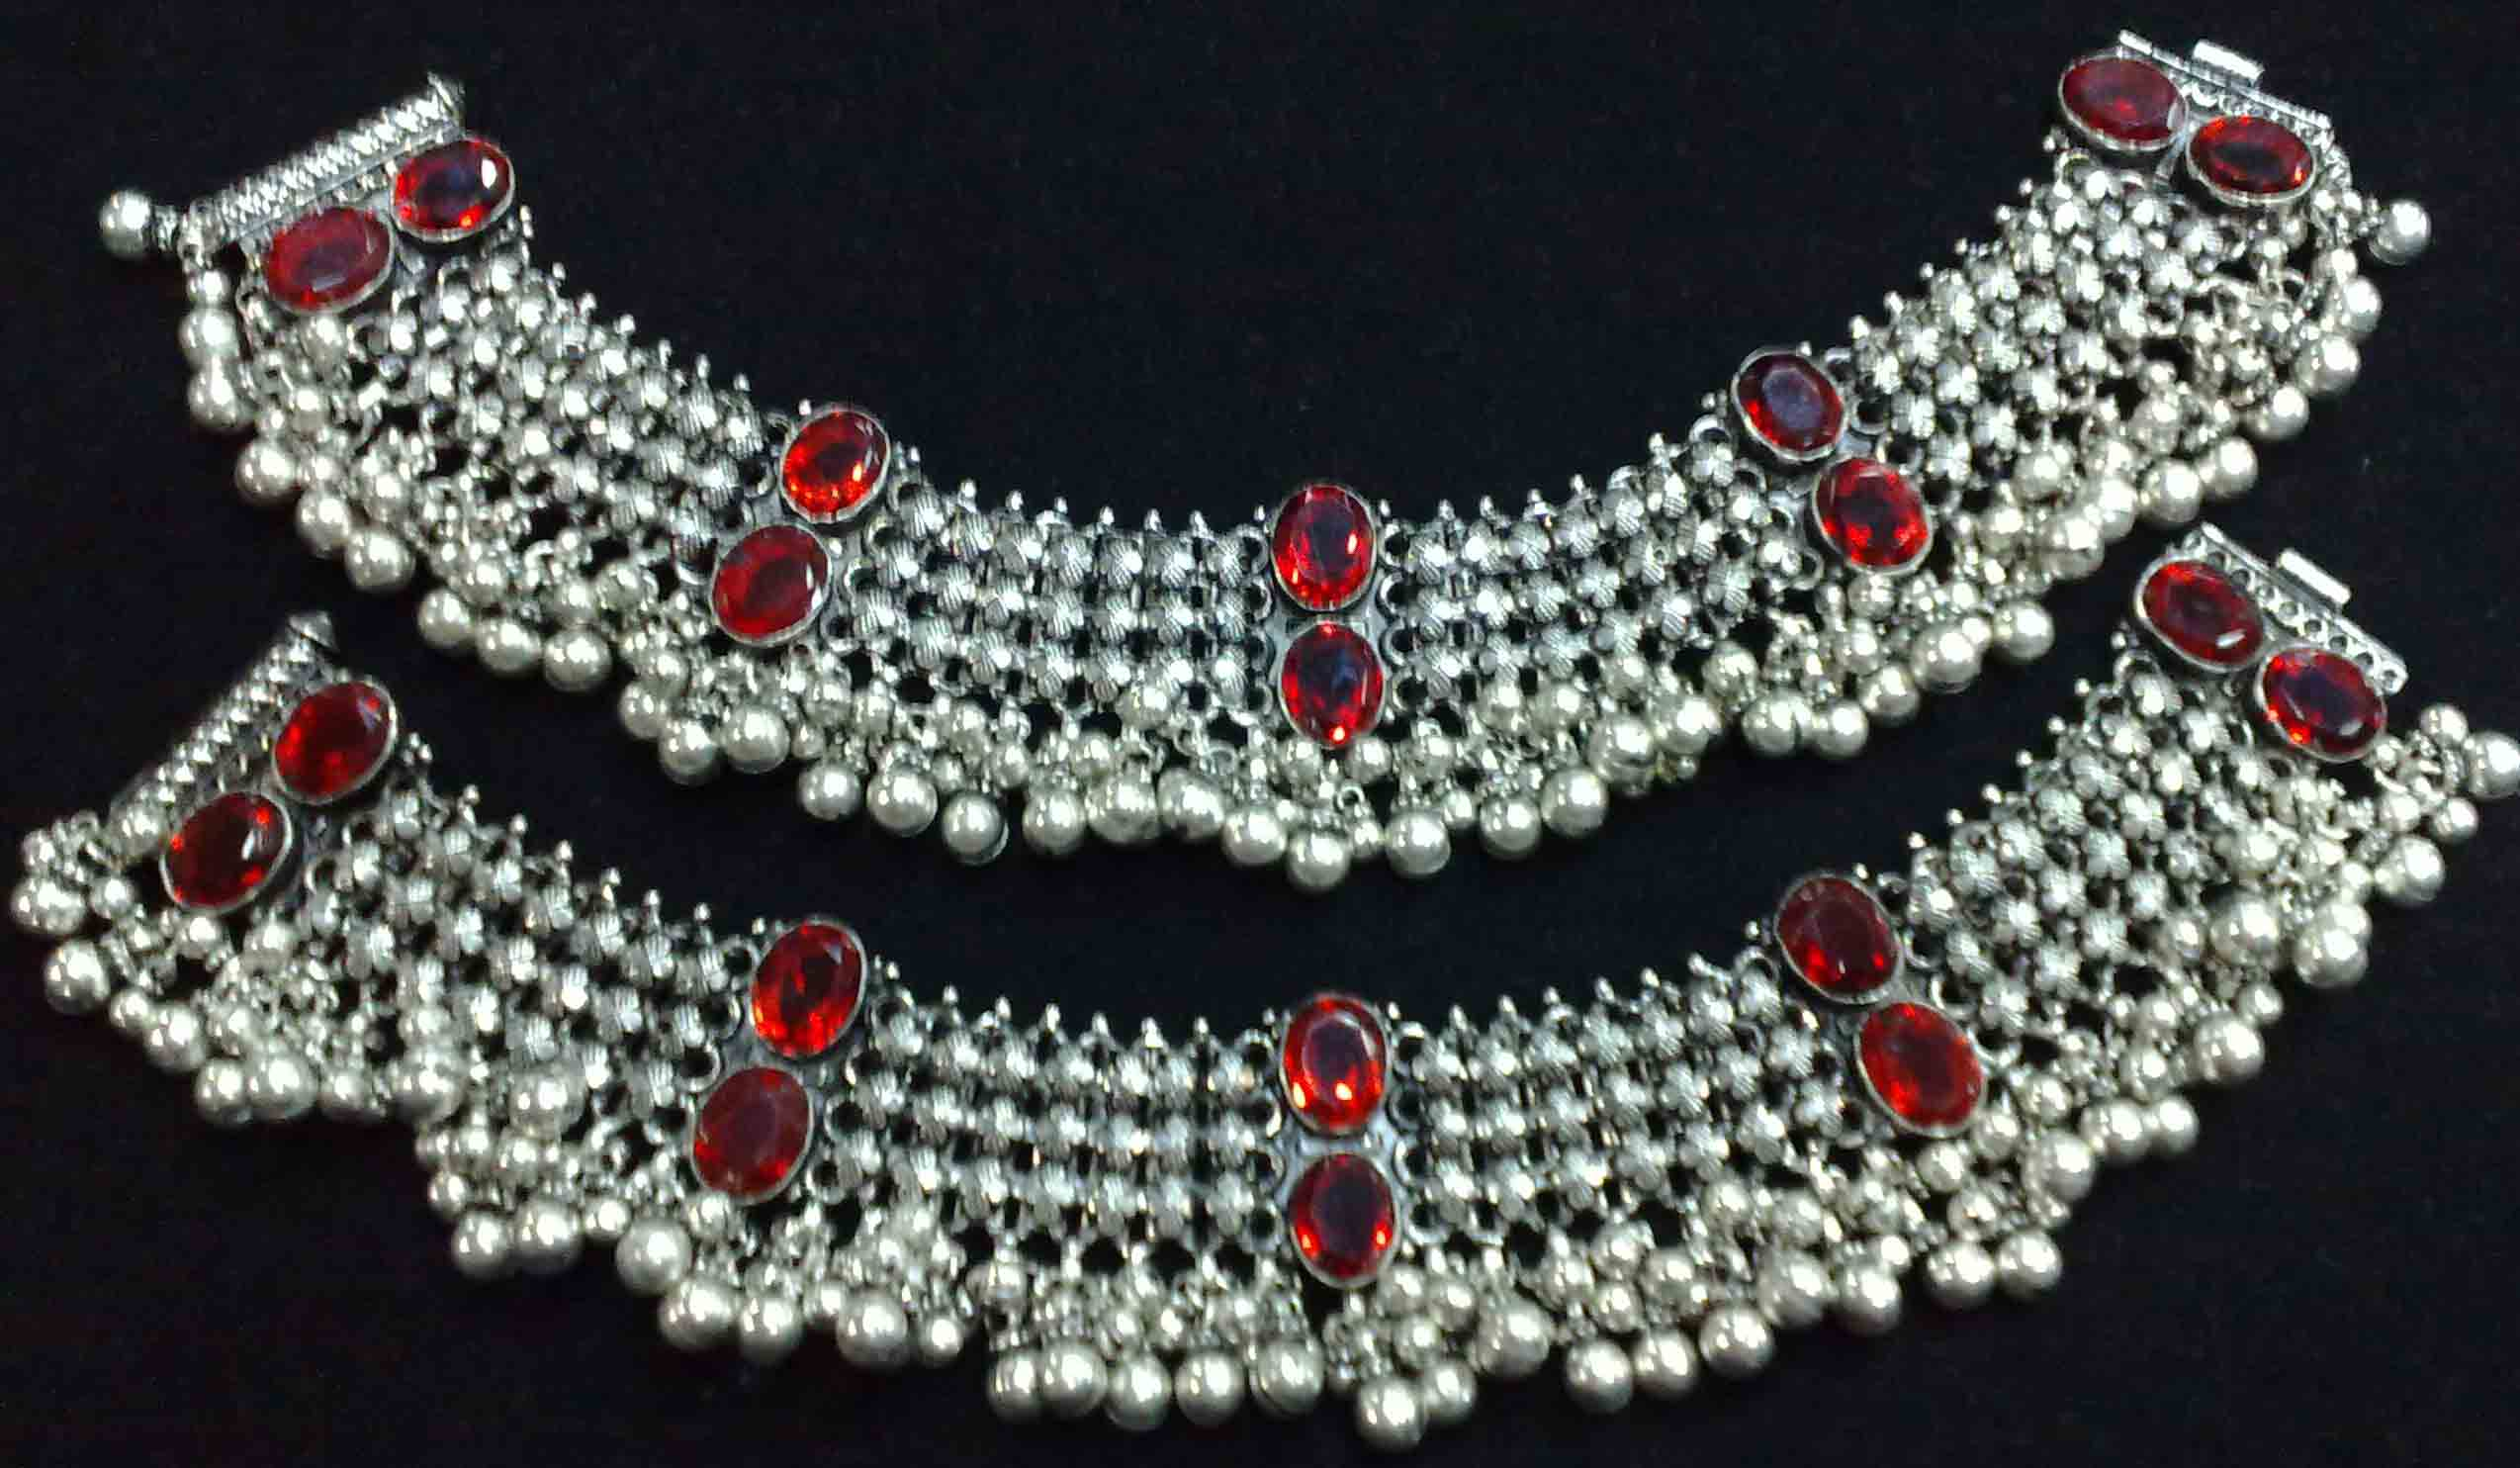 dulhan new anklet silver anklets bride chain gm s payal ankle is image loading itm ebay